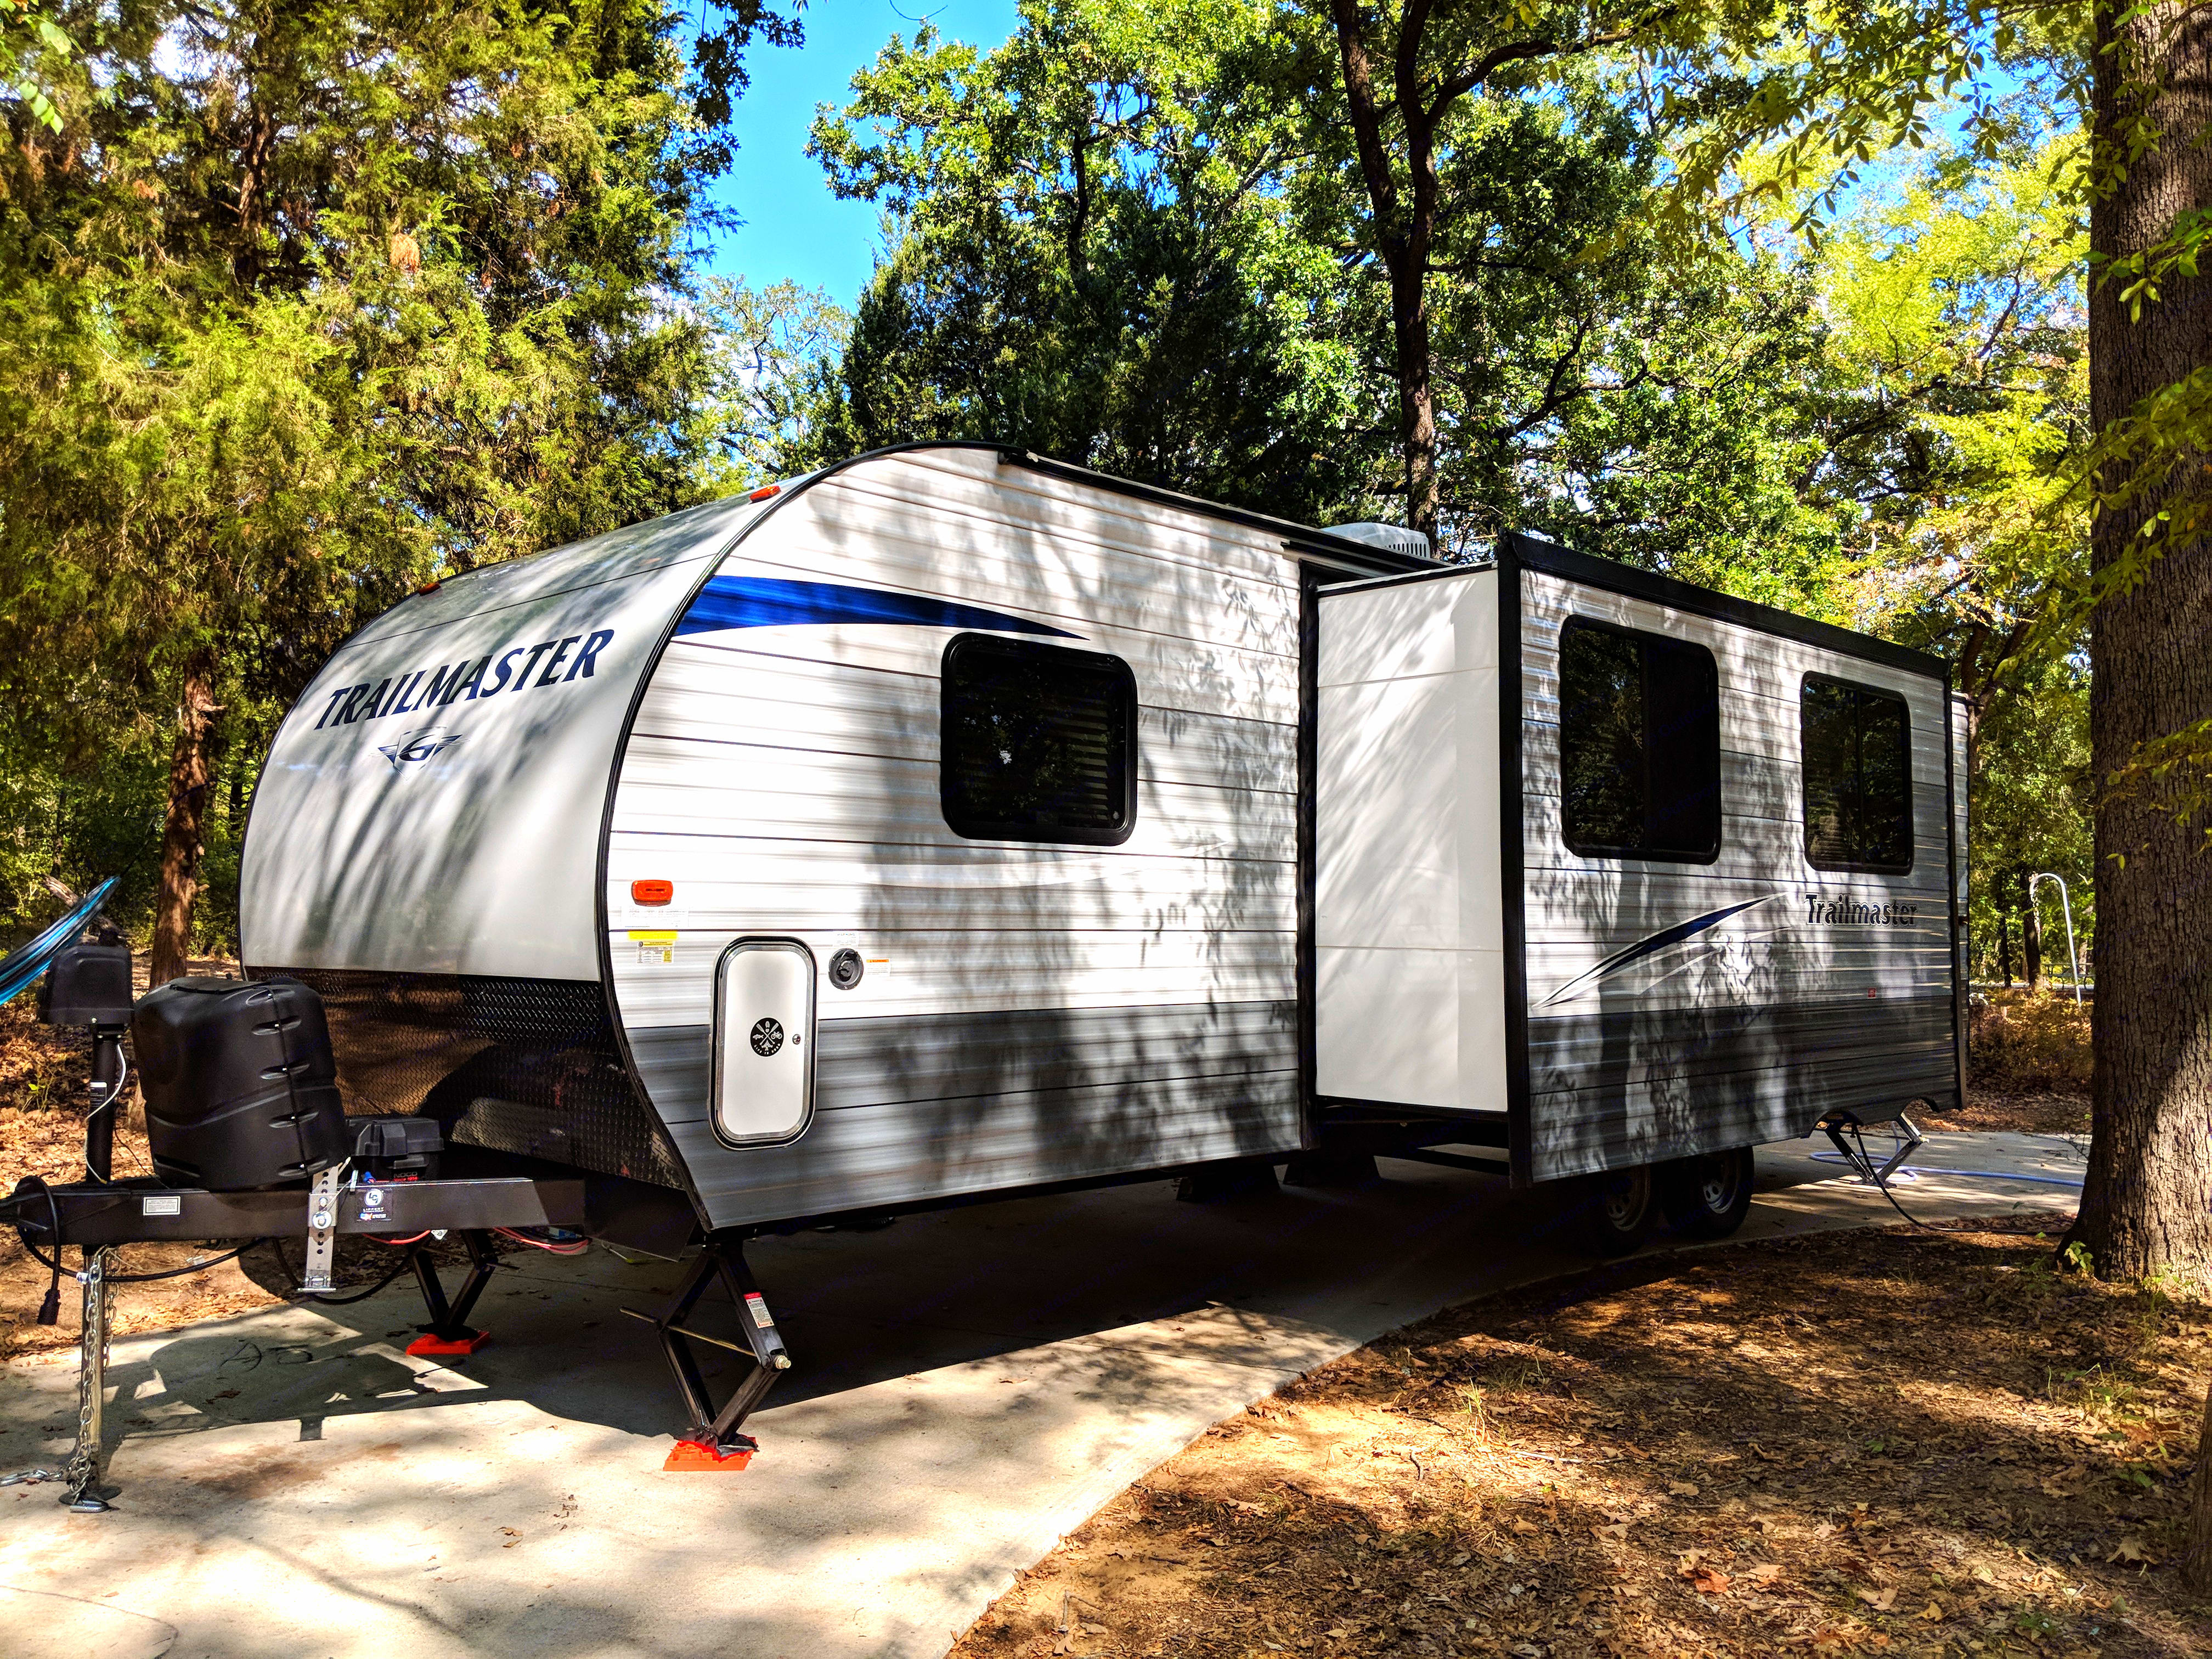 33ft Ultra light Travel trailer with a large slide out. Gulf Stream Trailmaster 2018